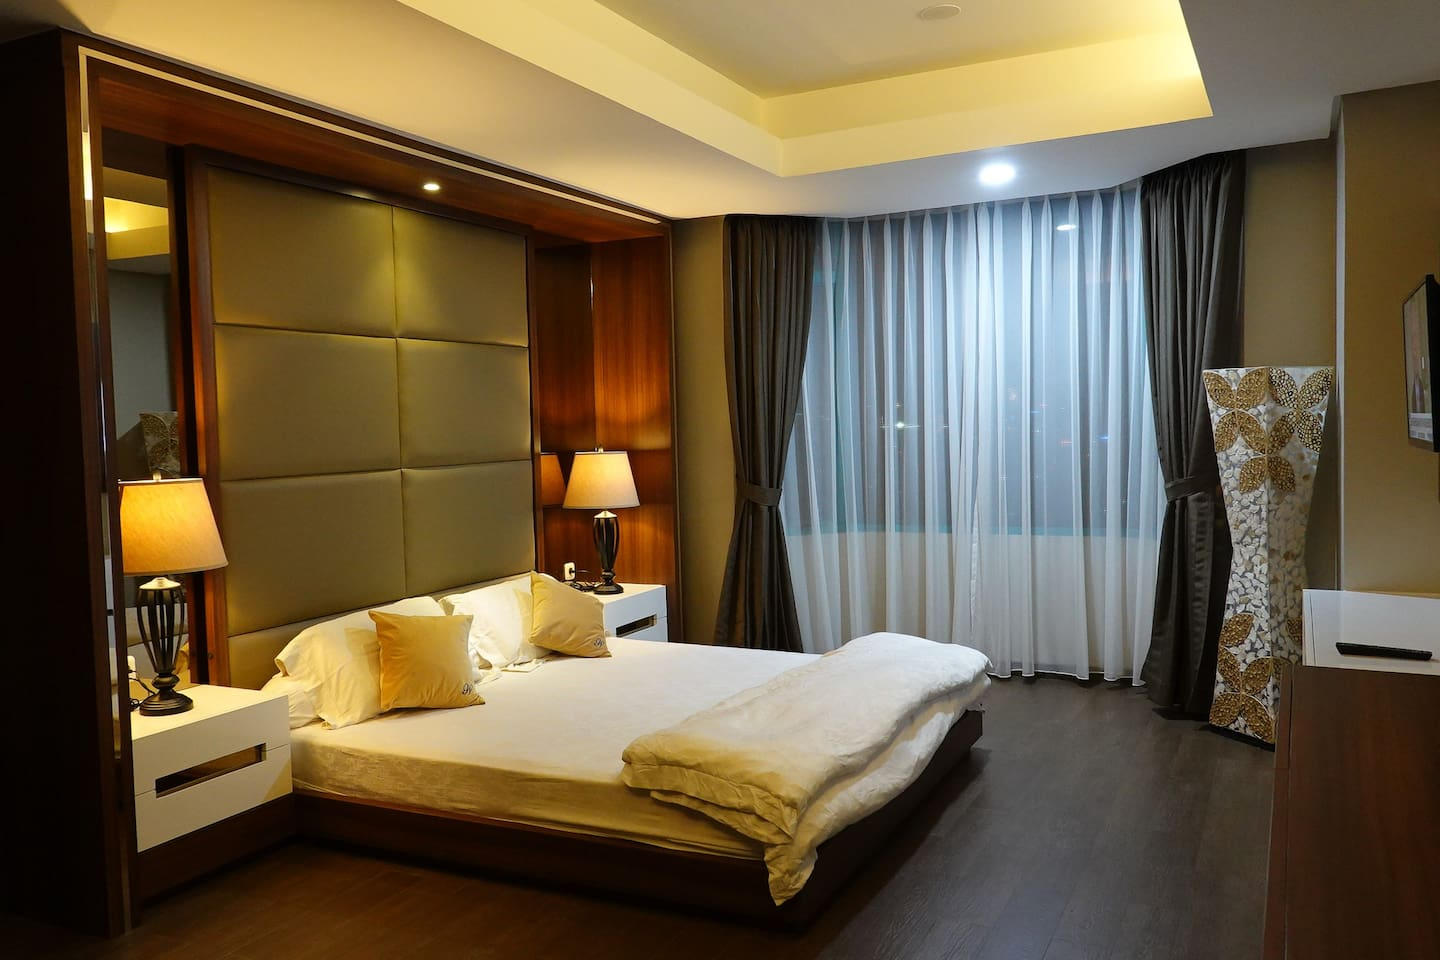 Master Bedroom comfort, beautifully design with low and bright lighting